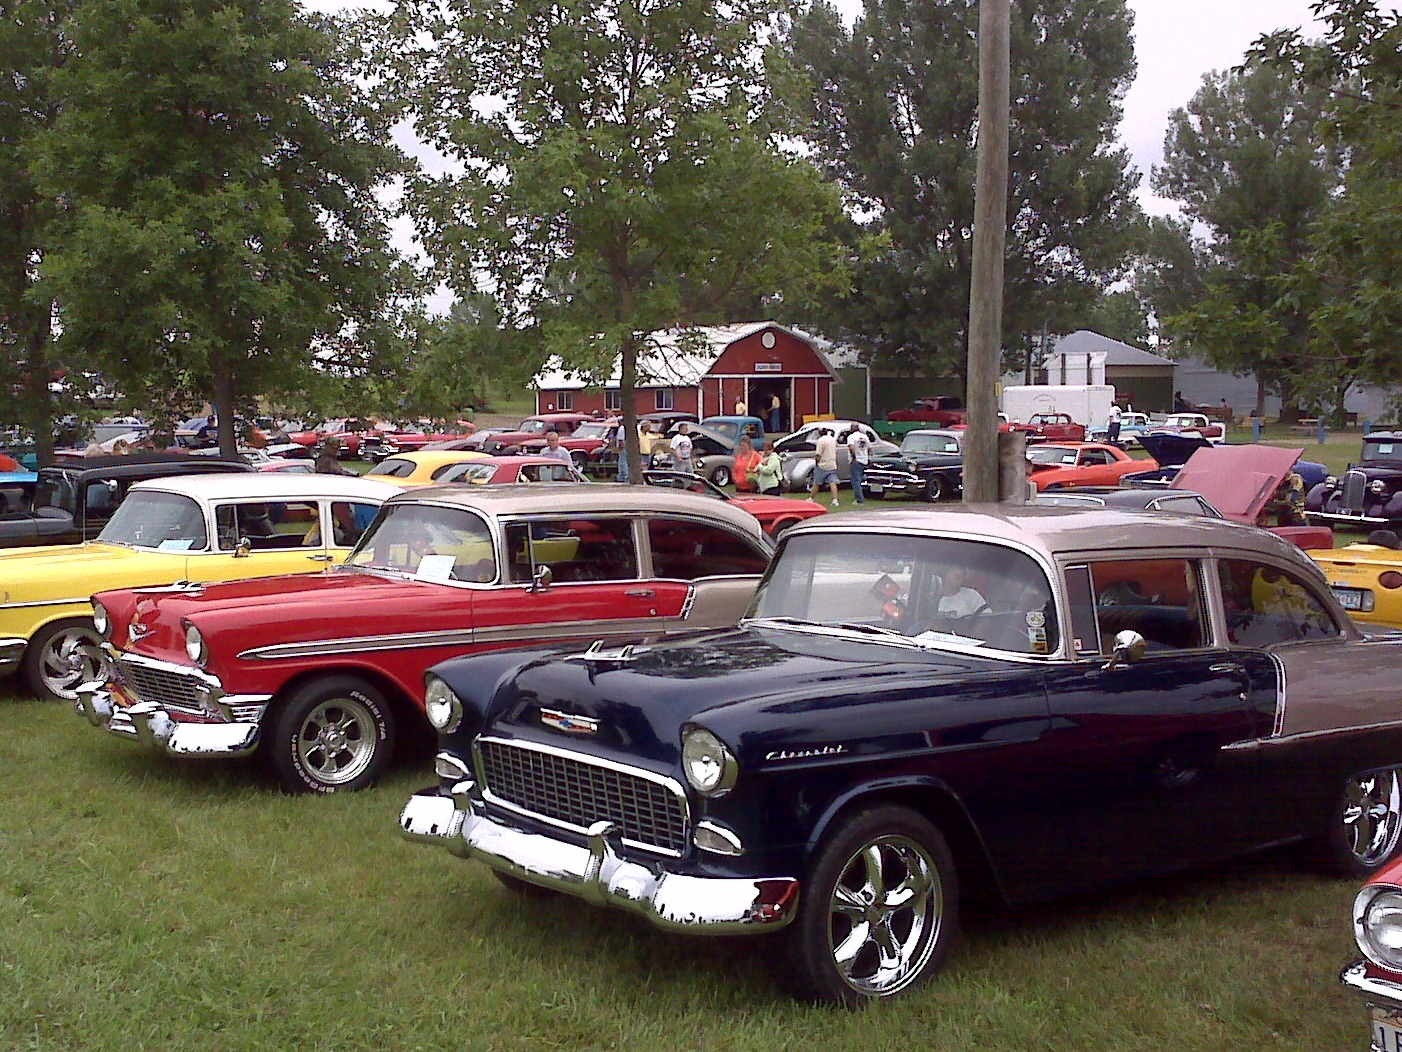 Wednesday Classic Car Show picture